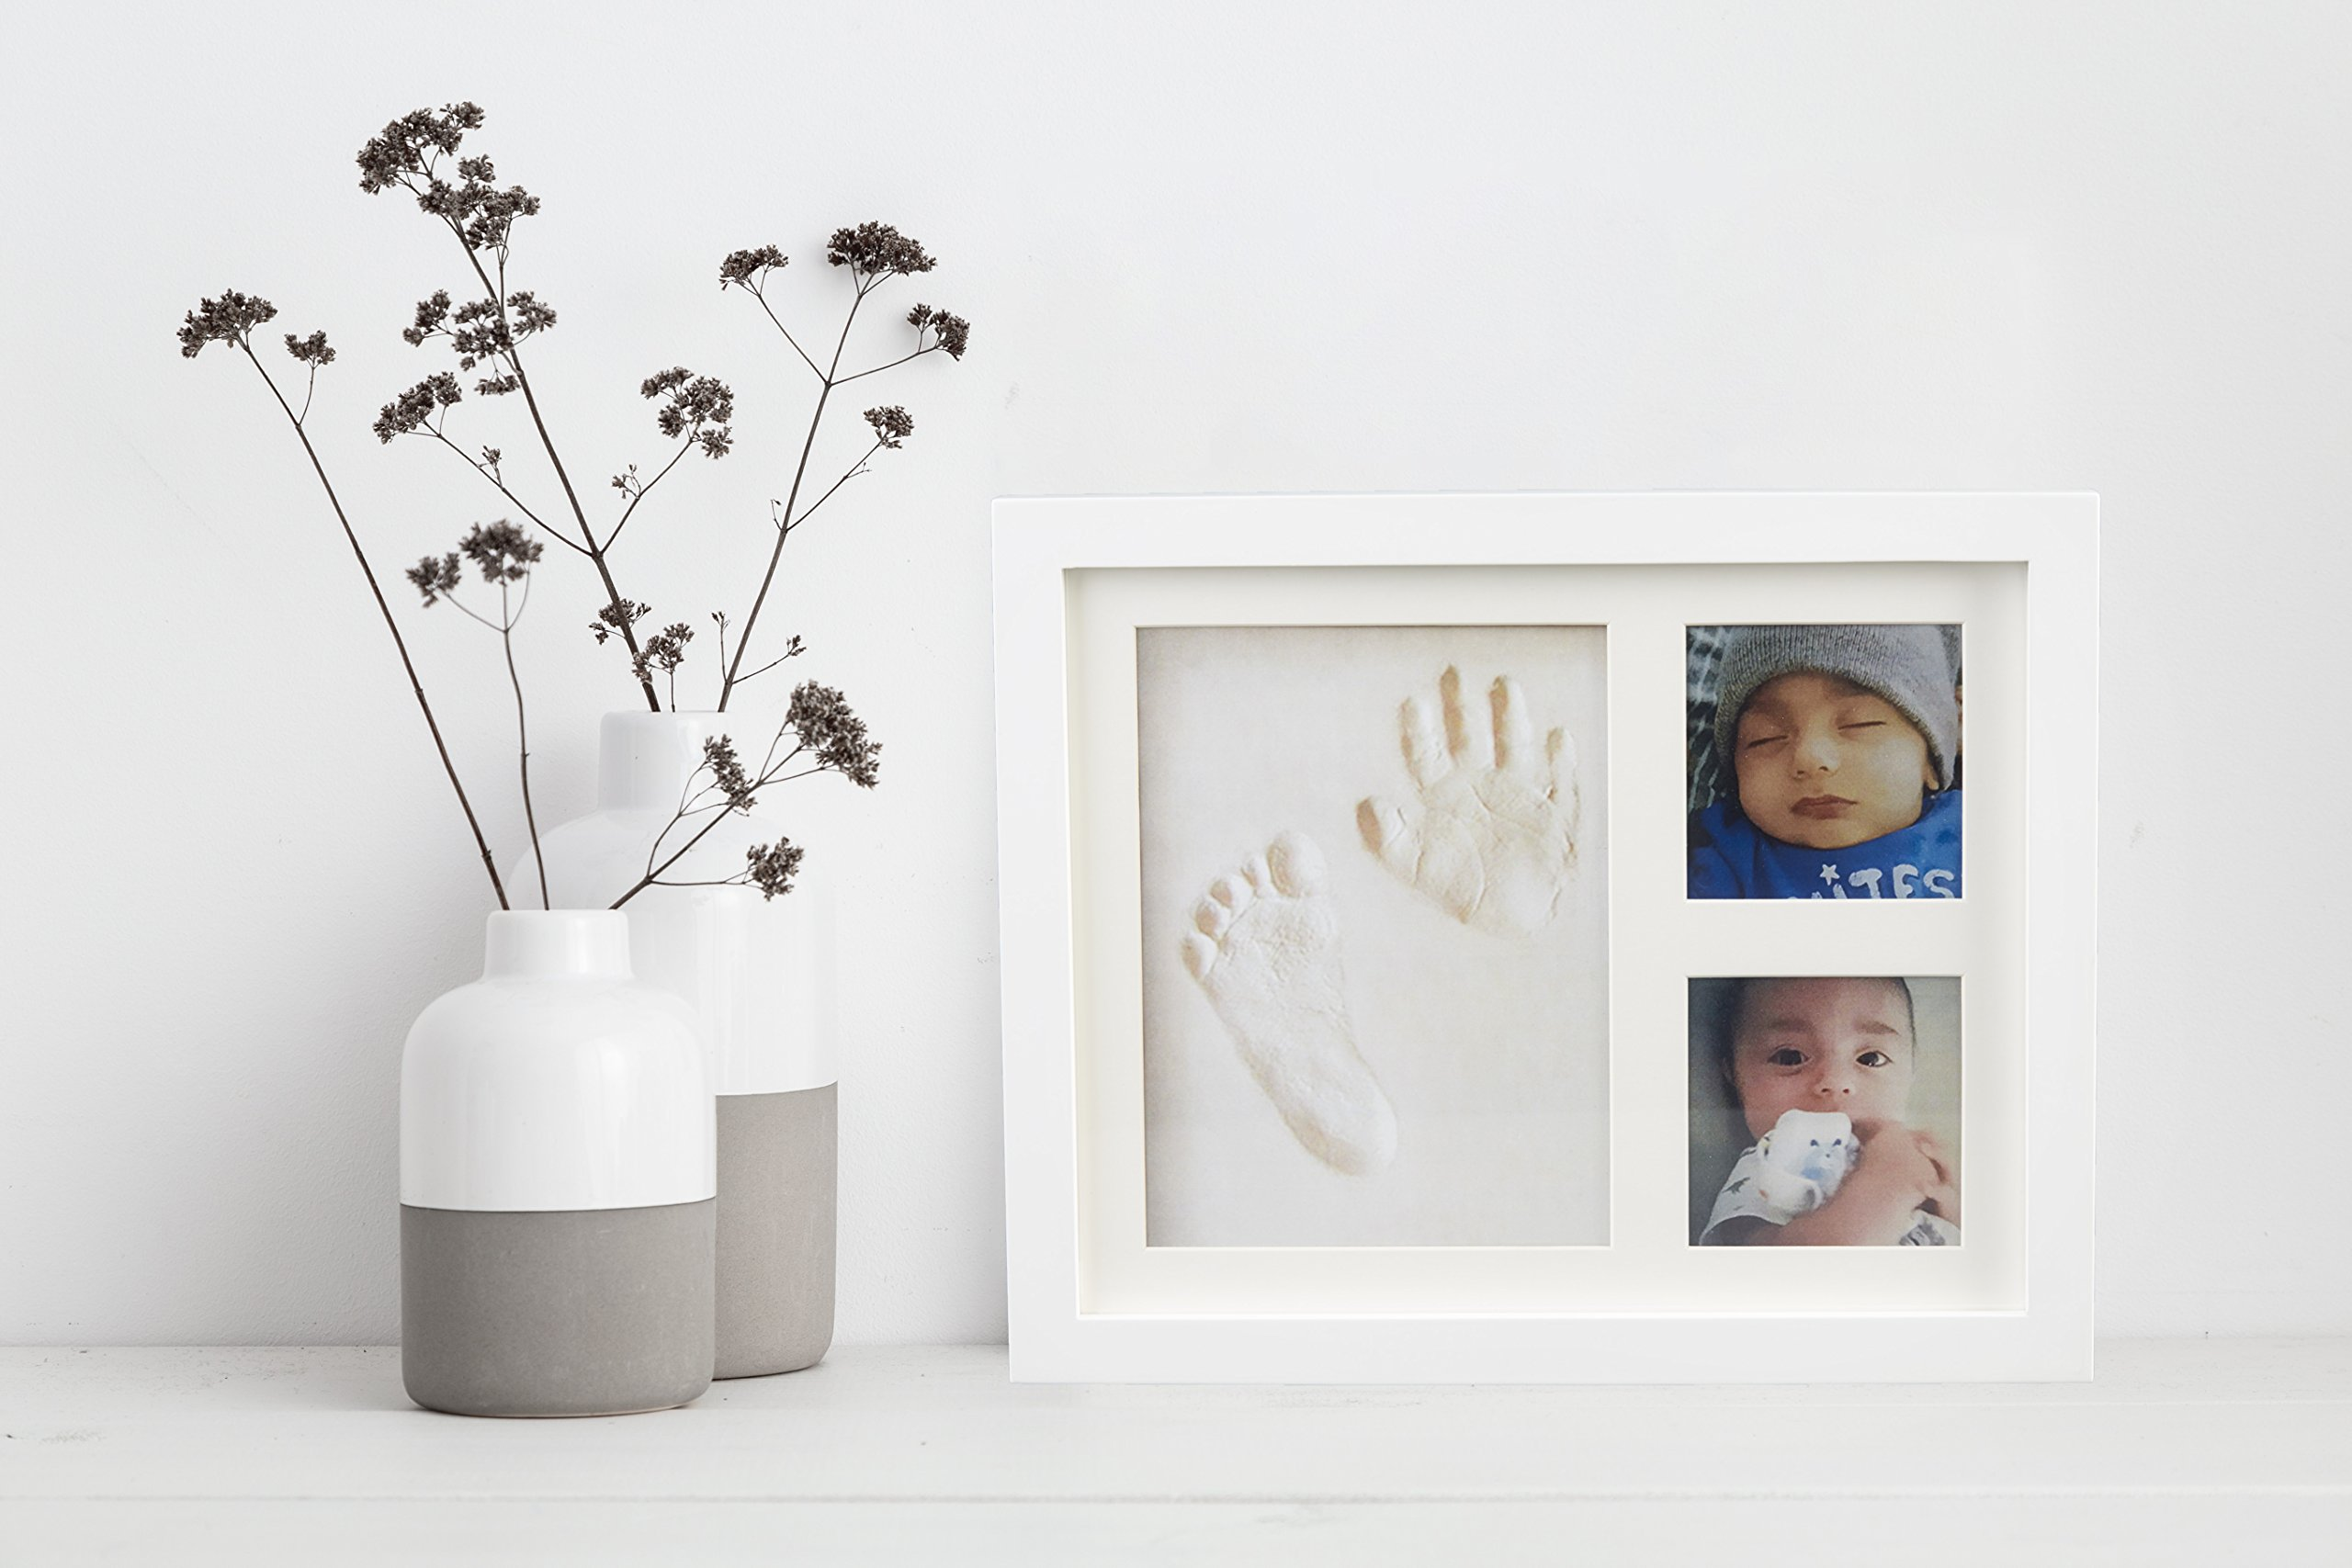 Baby Handprint Picture Frame Clay Kit for Newborn Girls and Boys by Baby Yei - The Photo Frames are Fully Painted White-Prevents Mold Creation-Safe for Treasuring your Angel's First Precious Memories by Baby Yei (Image #7)